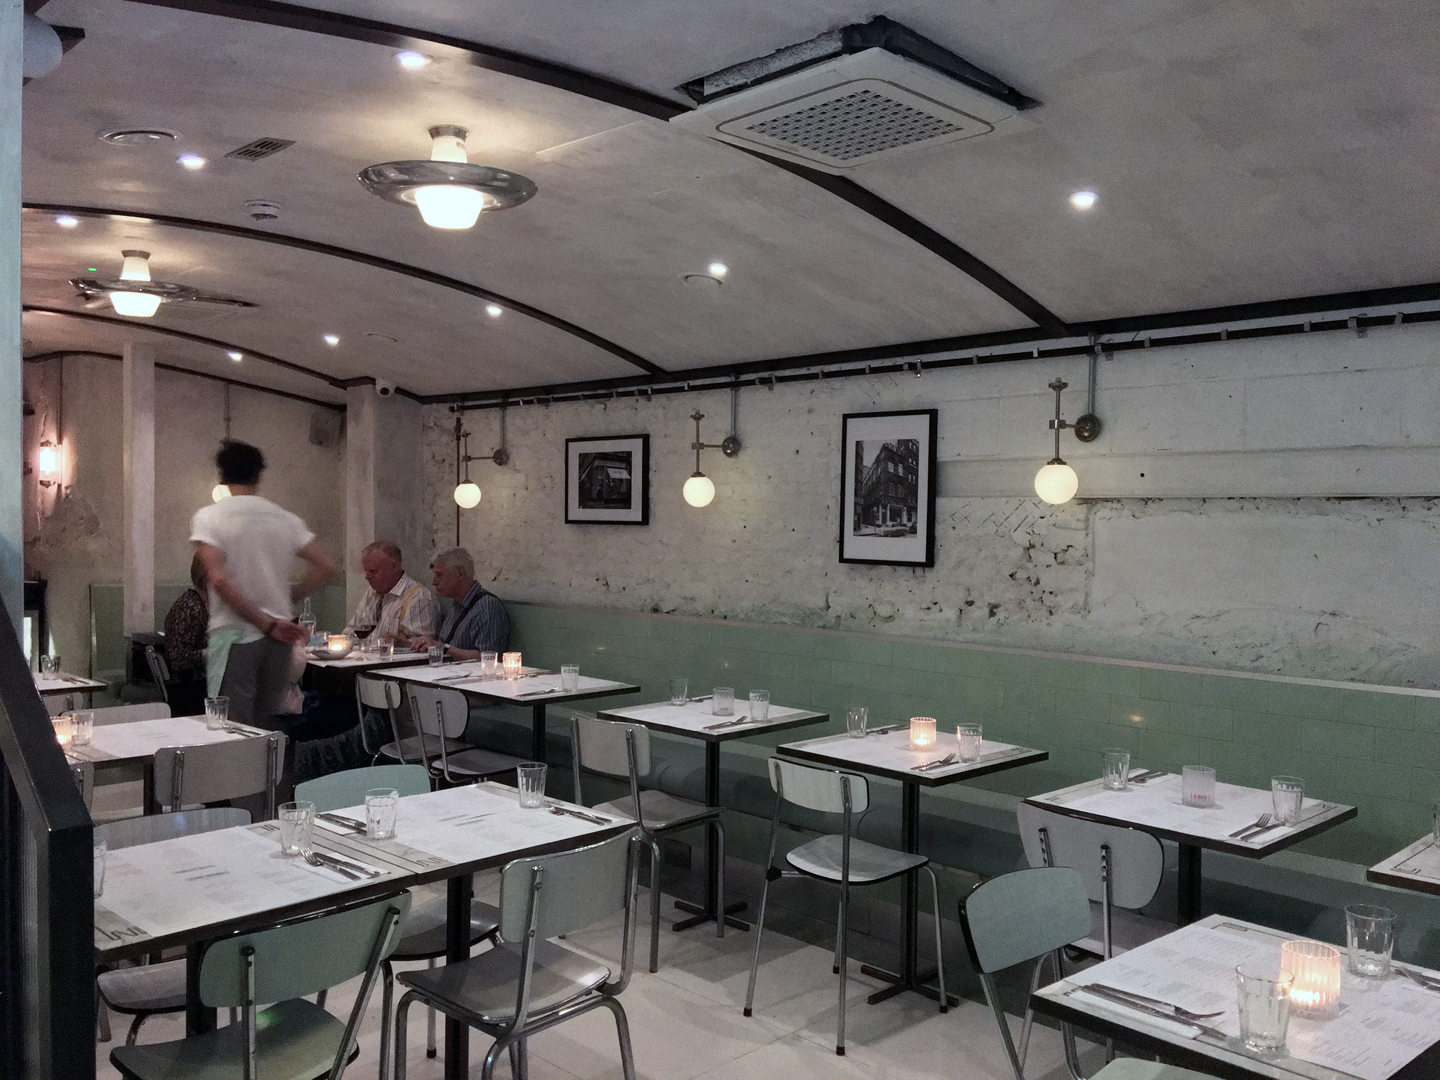 Resturant Stores Lina Stores Review Soho Italian Deli Spawns Its Own Dedicated